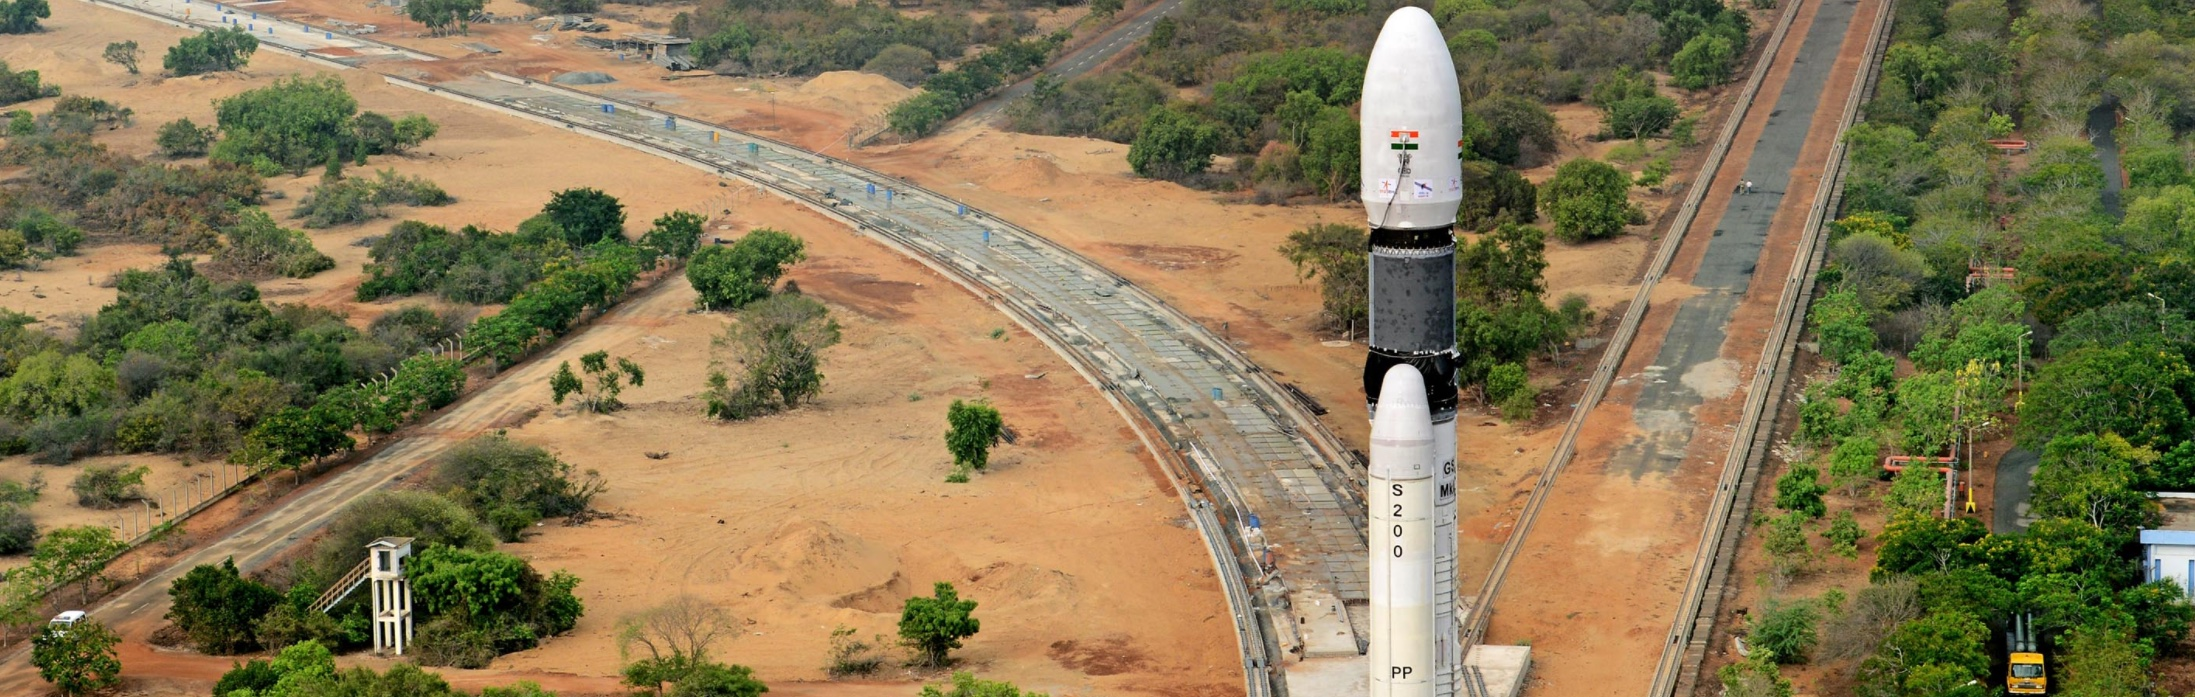 GSLV Gyan: Why Experts Think the Mk III Is a Big Deal for ISRO and India